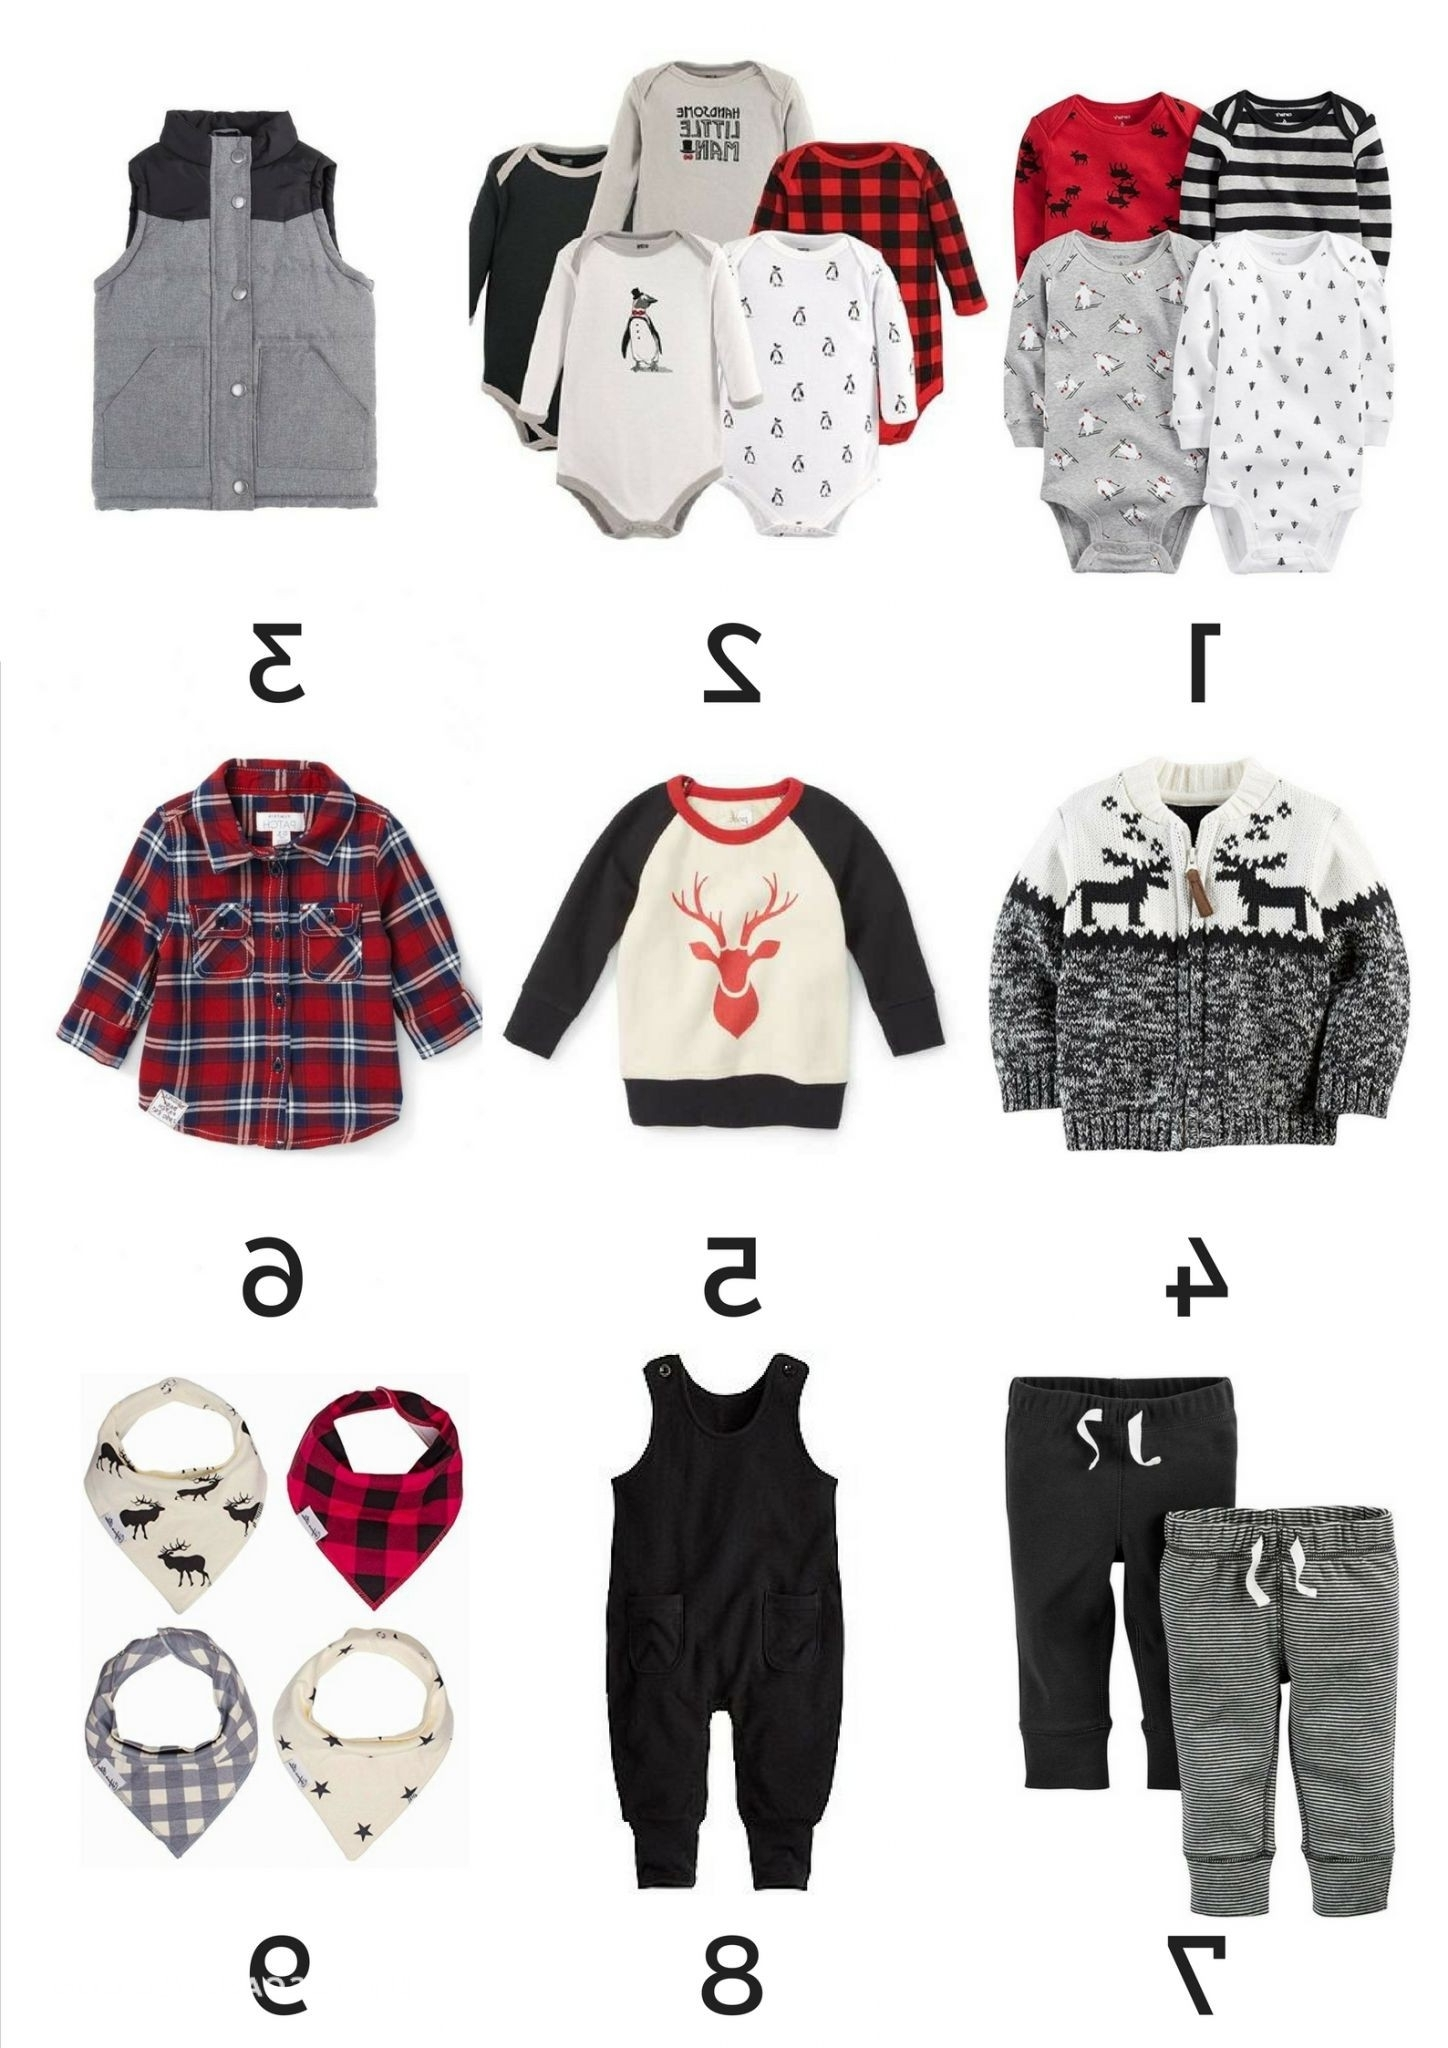 Your Guide To Baby's First Capsule Wardrobe For 2017 Wardrobes For Baby Clothes (View 7 of 15)